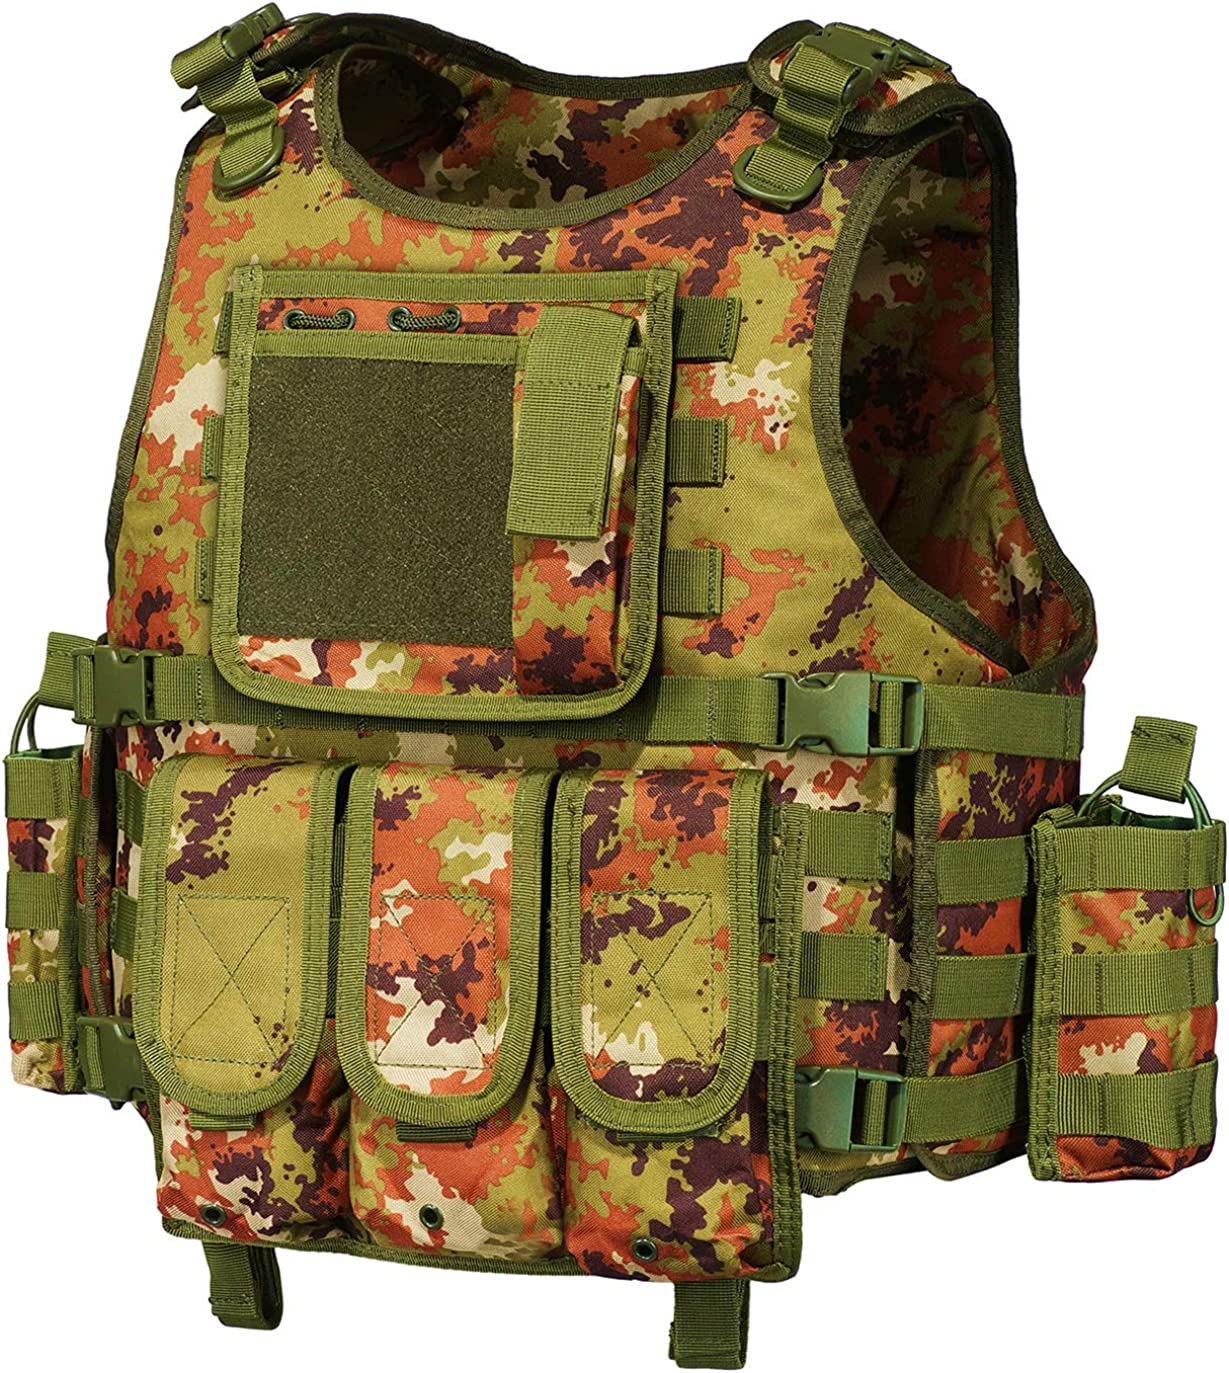 GZ XINXING Be super welcome Black Tactical Airsoft Paintball Vest Sale